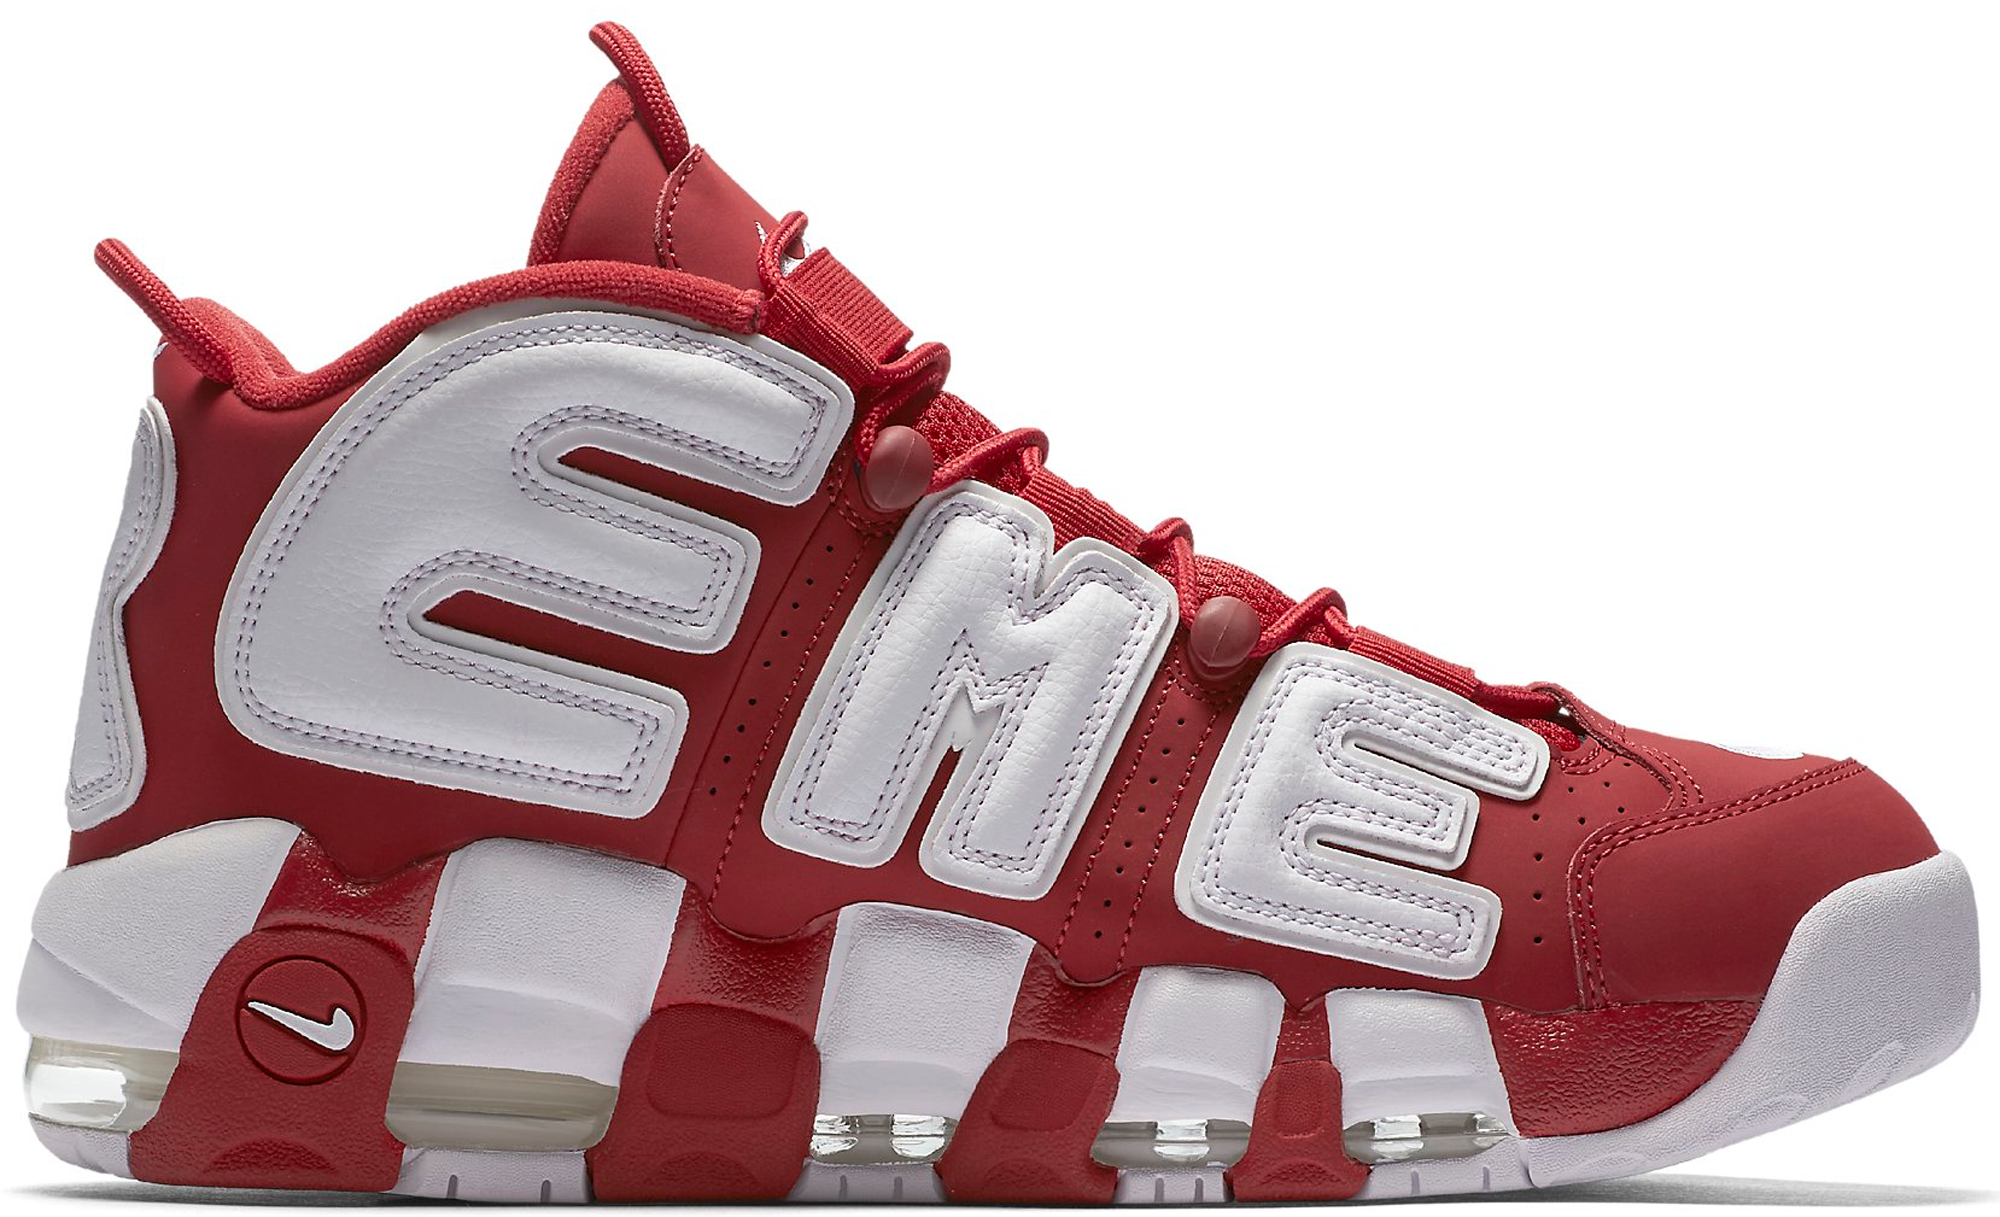 87032fc0ed84f Supreme x Nike Air More Uptempo Varsity Red Suptempo